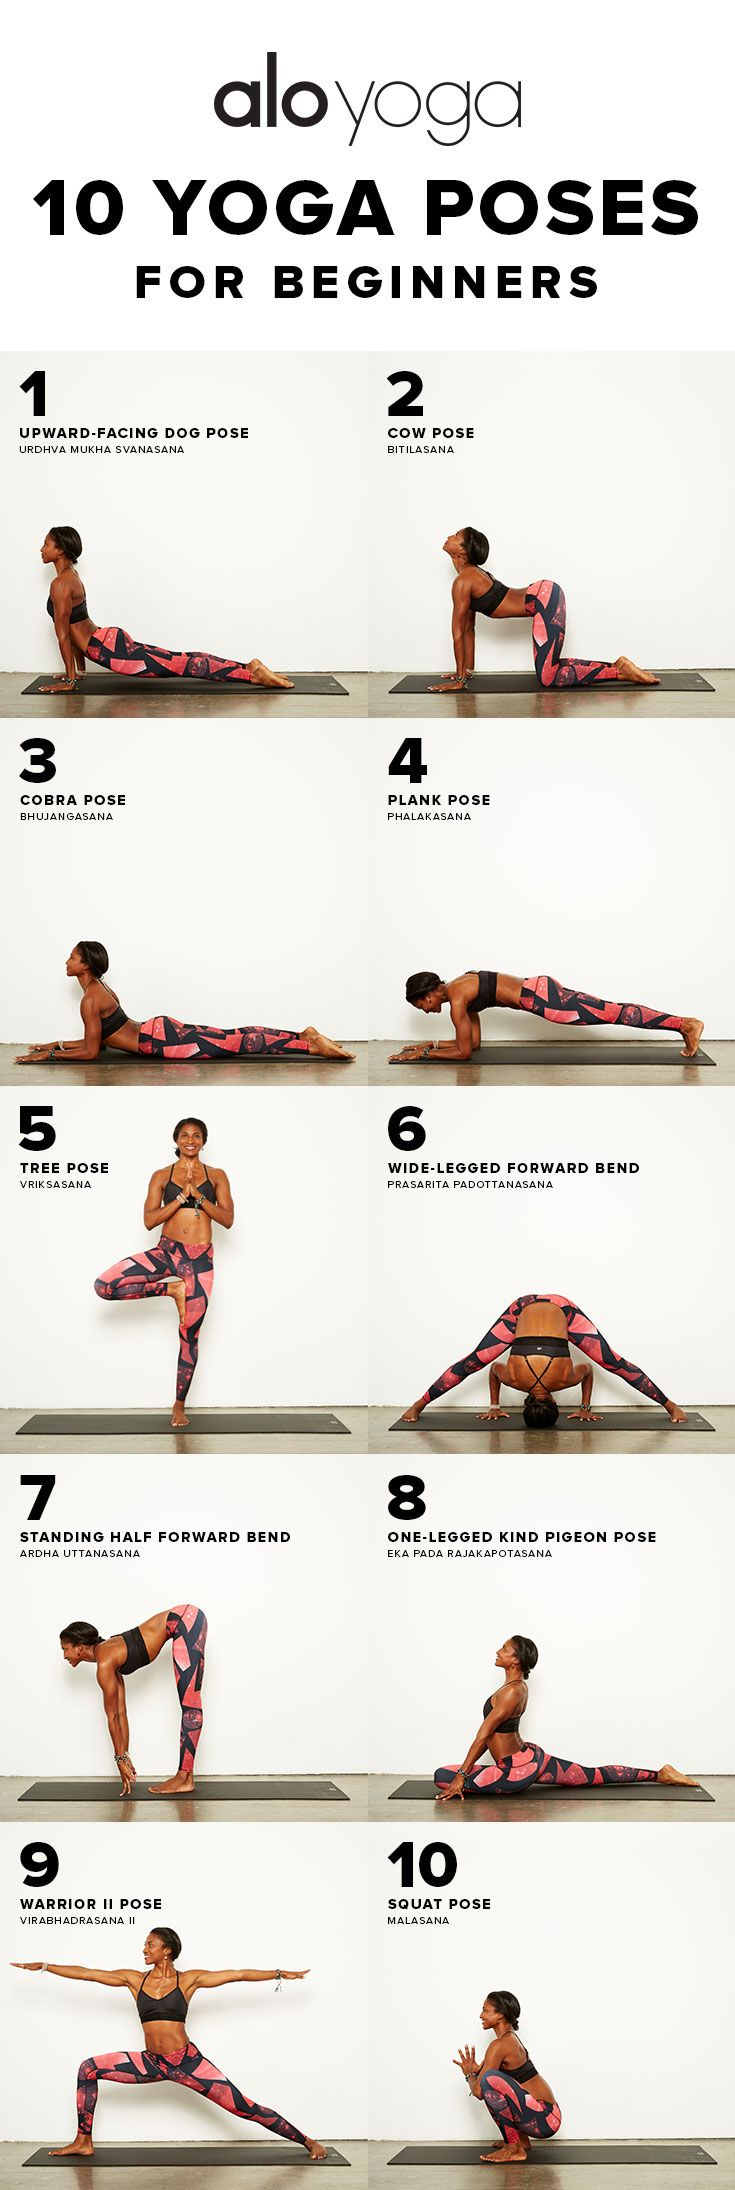 Yoga Poses Workouts For Beginners 10 Yoga Poses For Beginners Yoga Yogasequence Sequence Inspiration Www Aloyo Fitnessviral Magazine Your Number One Source For Daily Health And Fitness Motivation